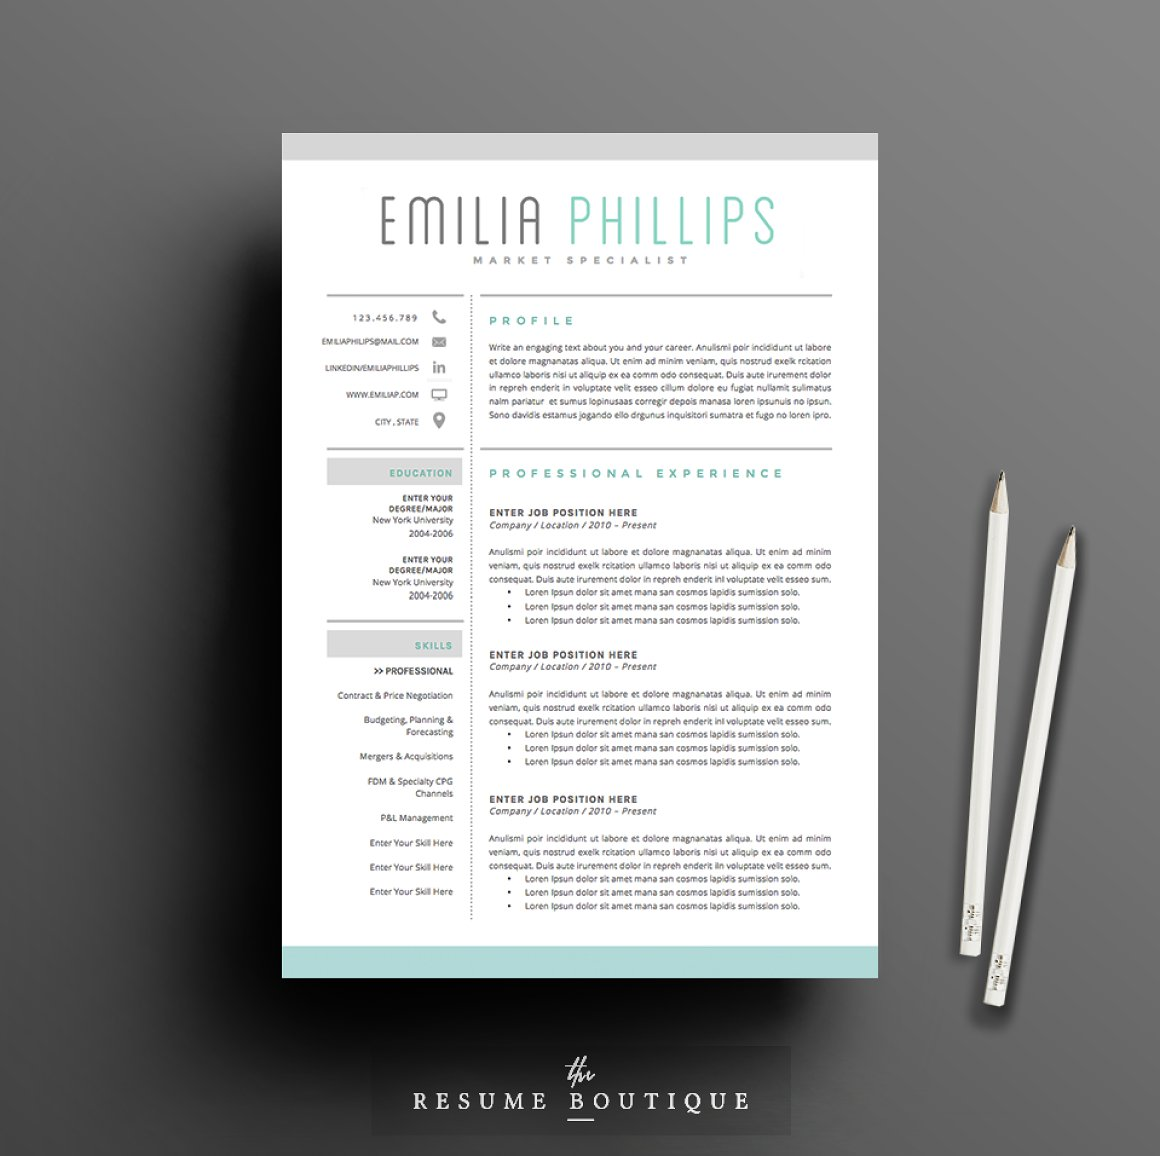 50 Creative Resume Templates You Won't Believe are Microsoft